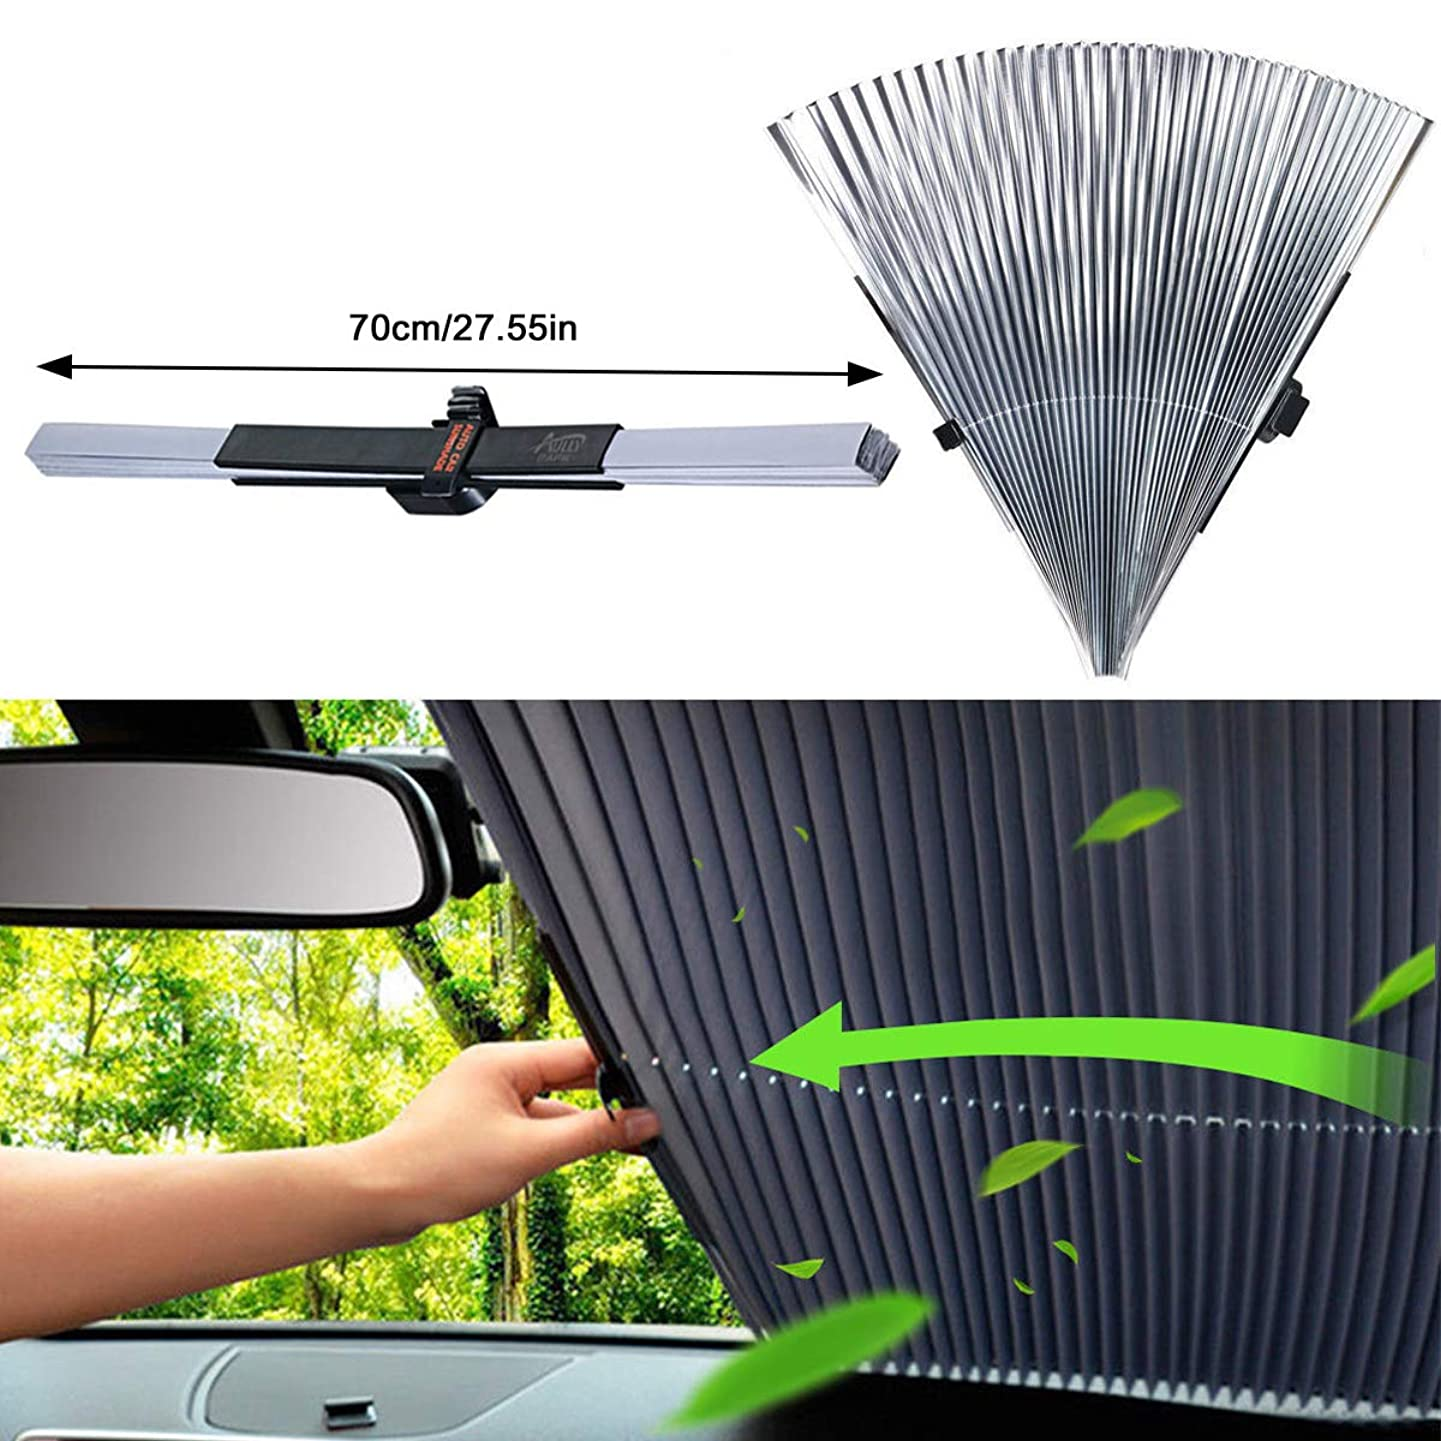 AUTOPDR Universal Car Retractable Windshield Sun Shade Auto Sun Shade Cover for Most car Trucks SUV UV Protection Front Windows q393212779960659